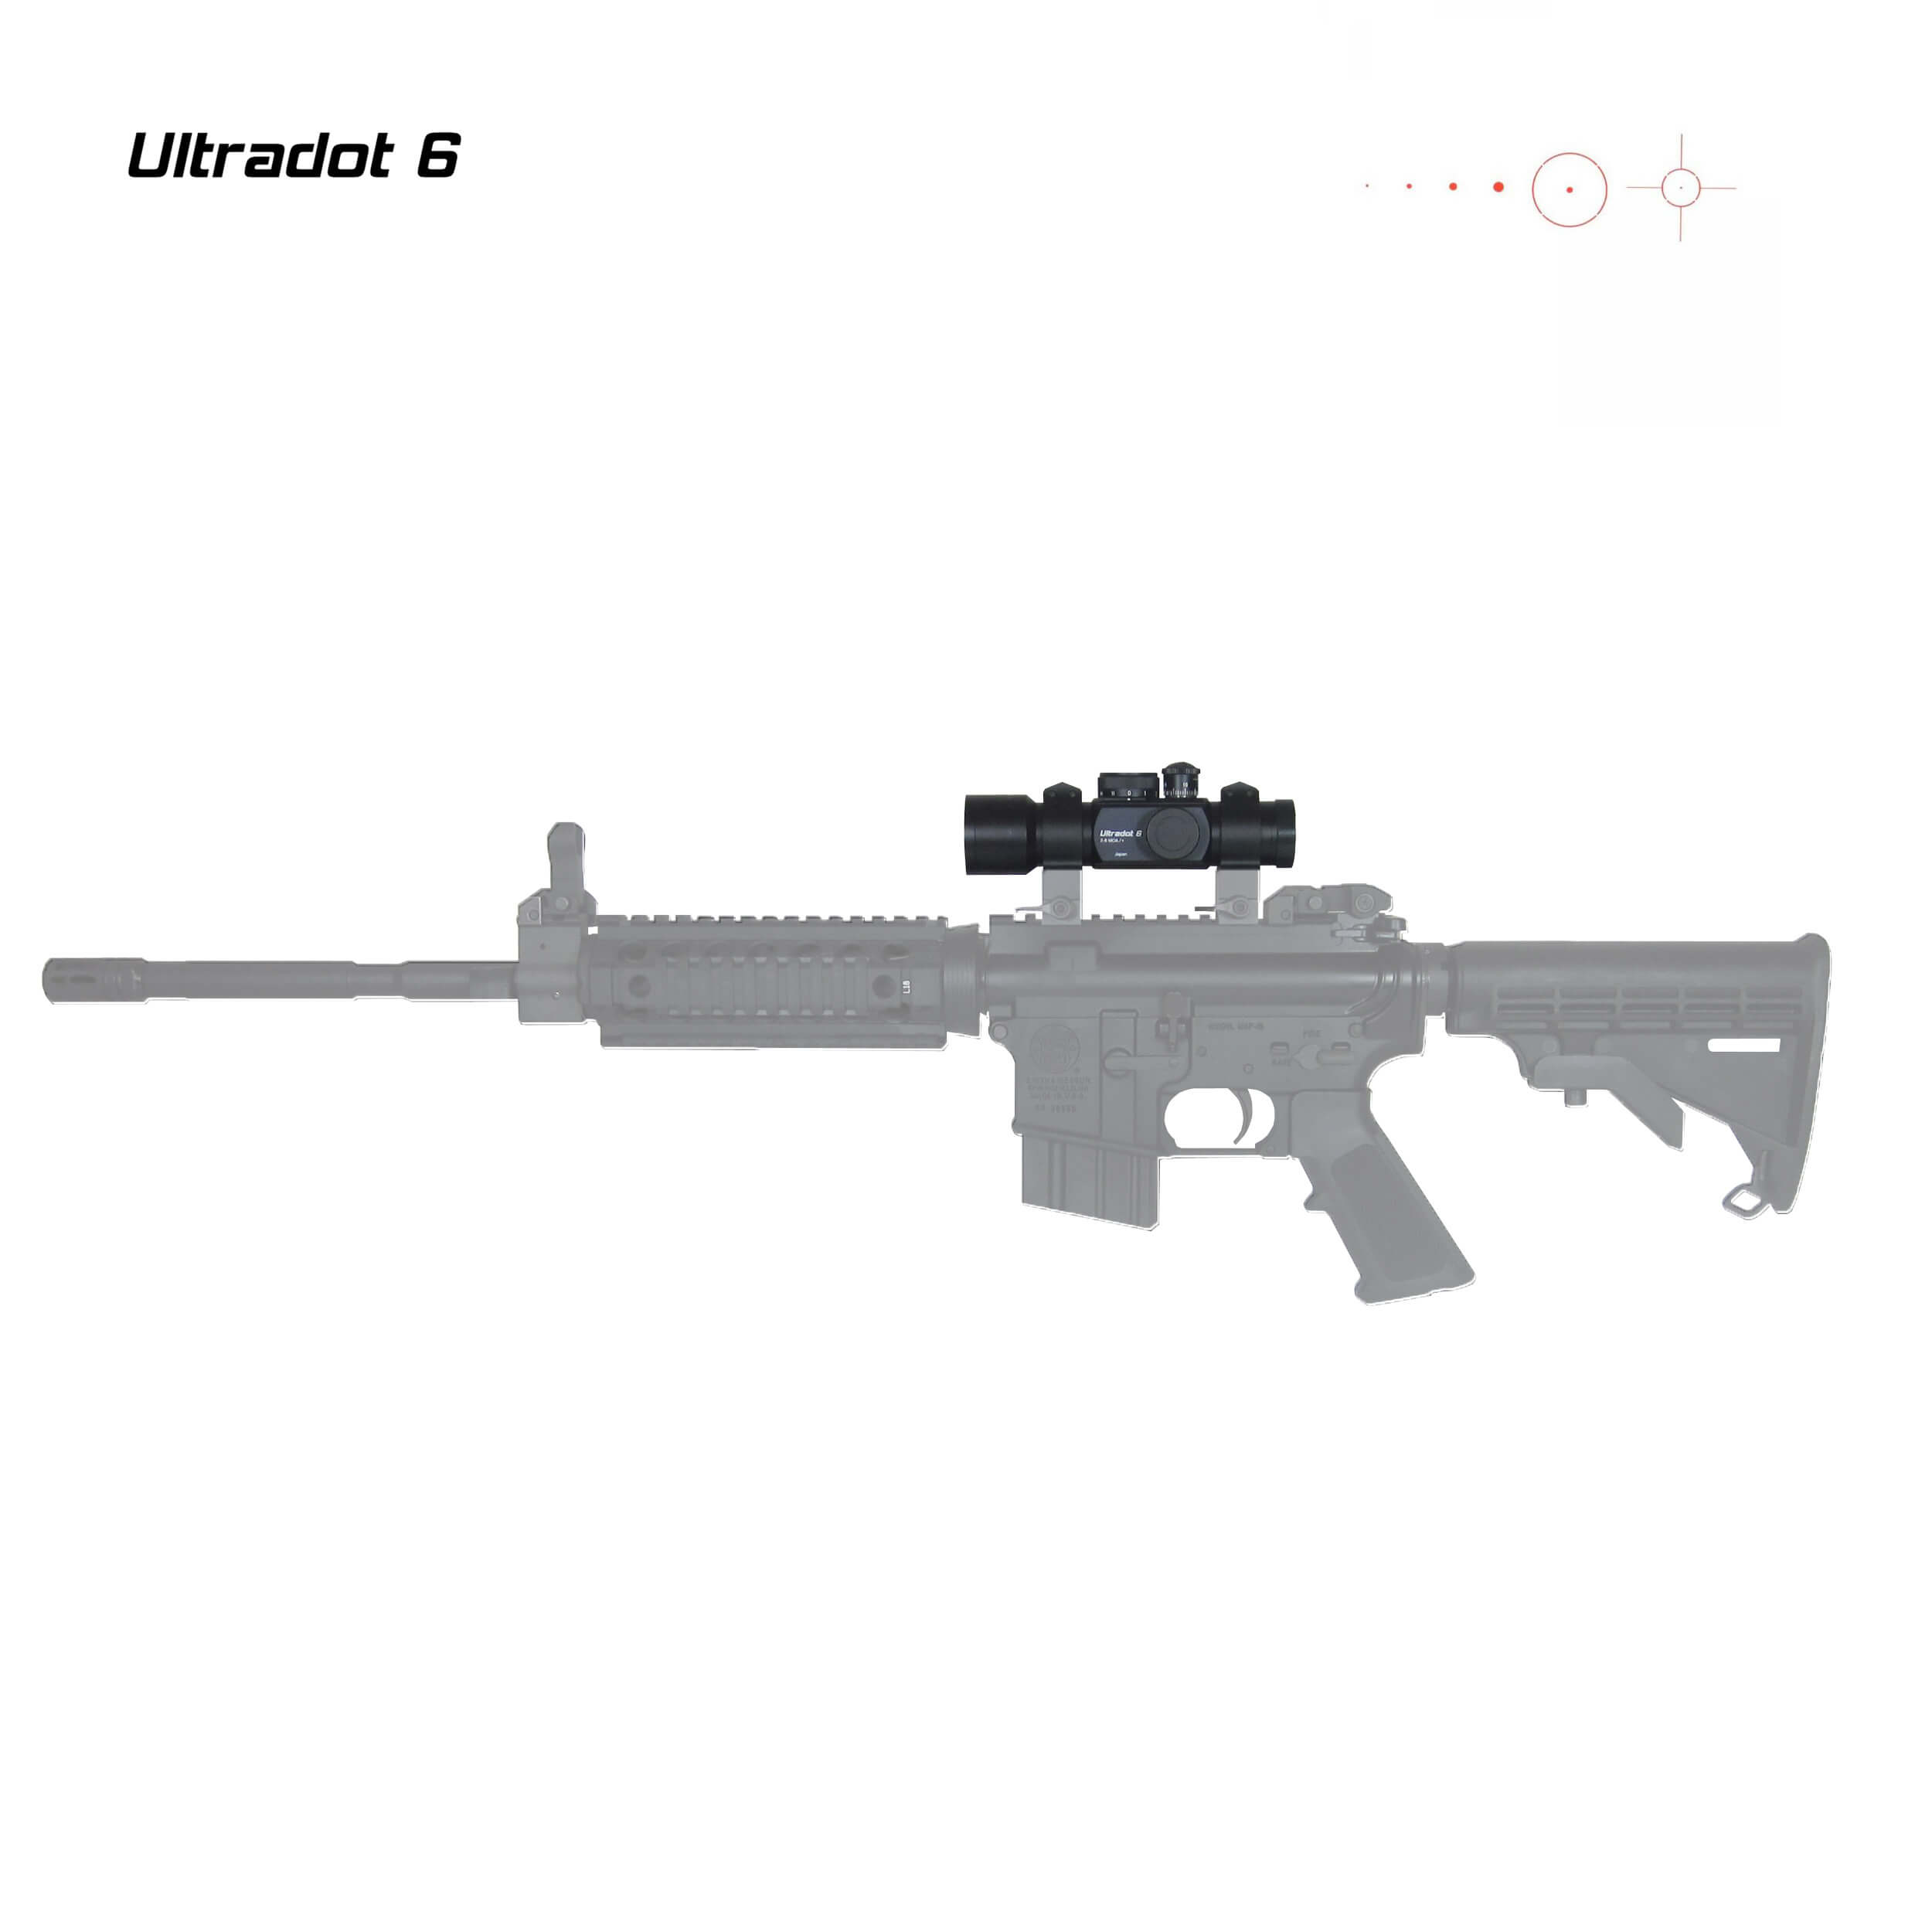 Red Dot Sight Ultradot 6